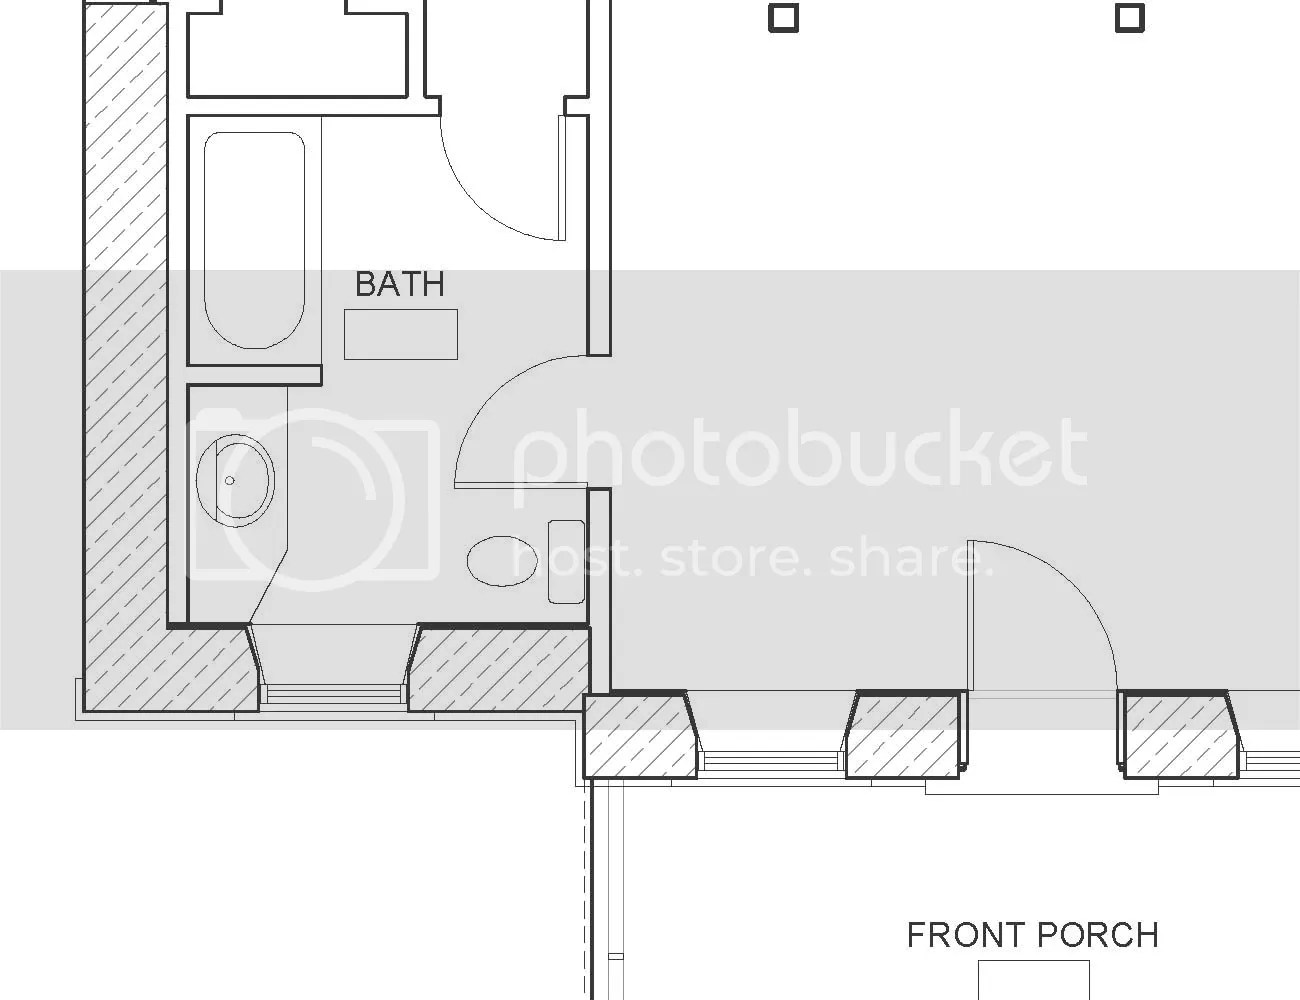 2011 Create Angled window opening in plan view